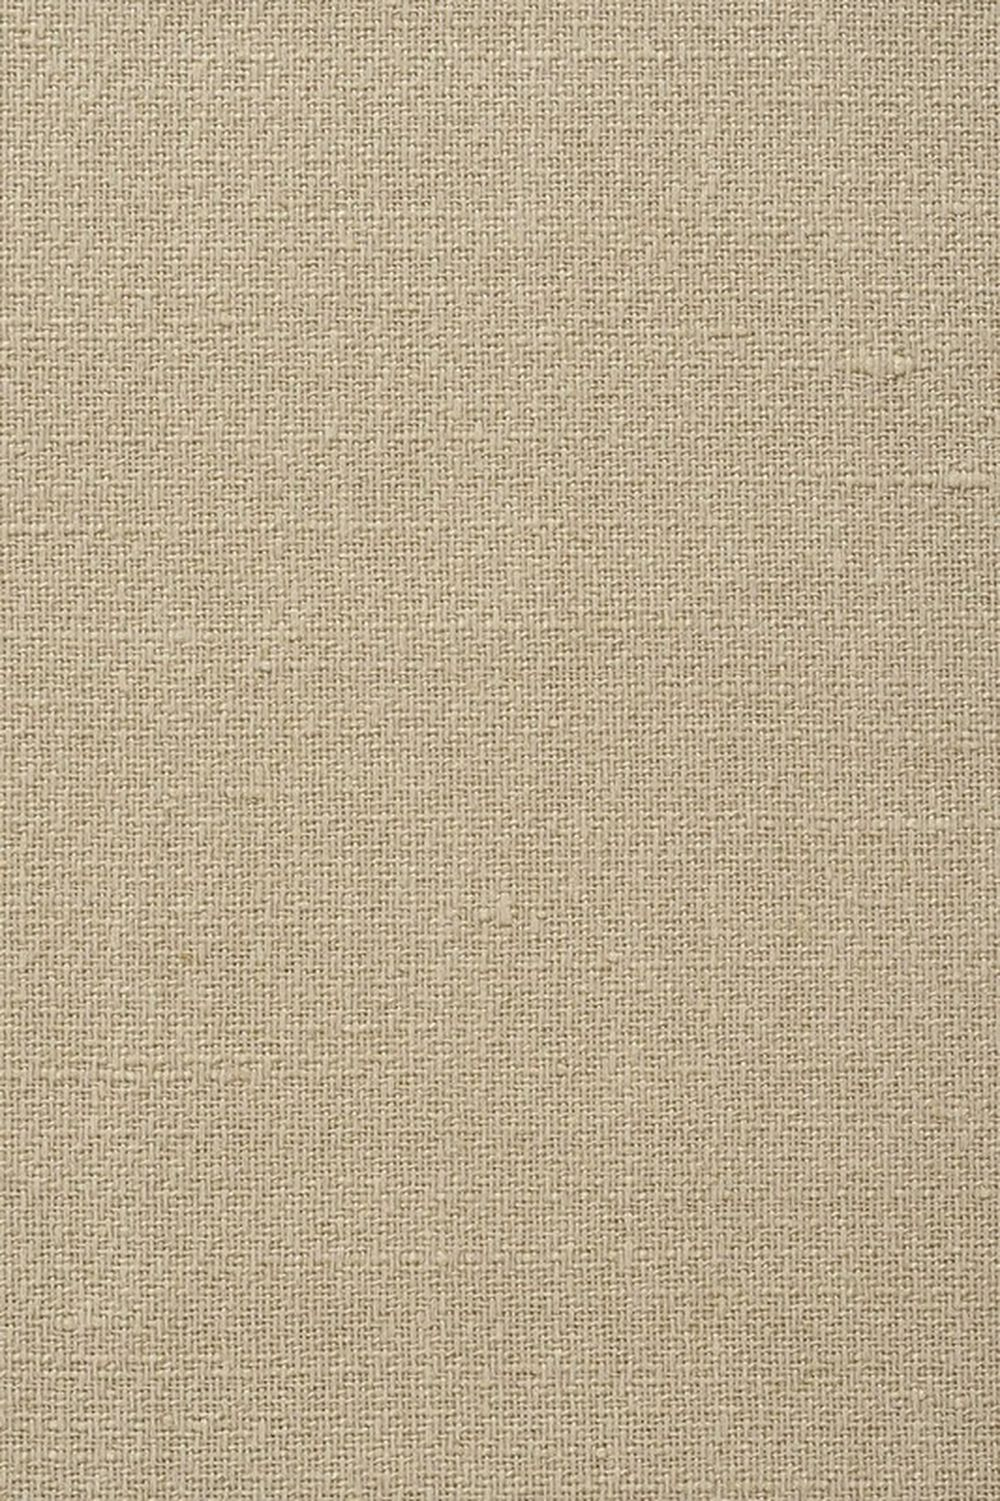 Photo of the fabric Simplicity* Almond swatch by James Dunlop. Use for Curtains, Accessory. Style of Plain, Texture